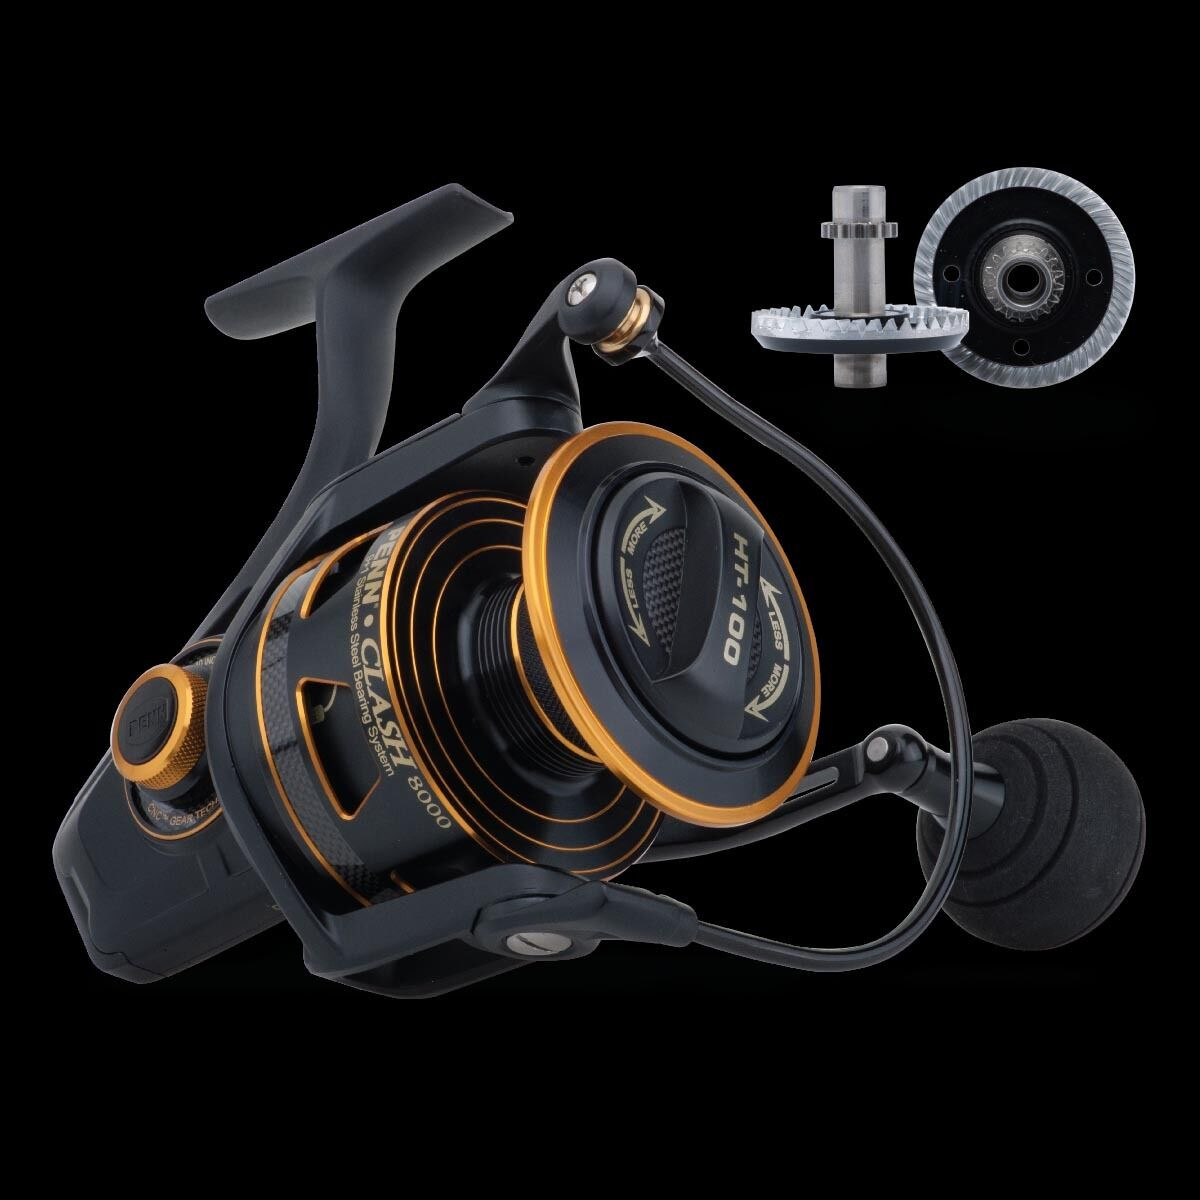 Penn Clash CLA 6000 Spinning Fishing Reel + Free Line + Warranty